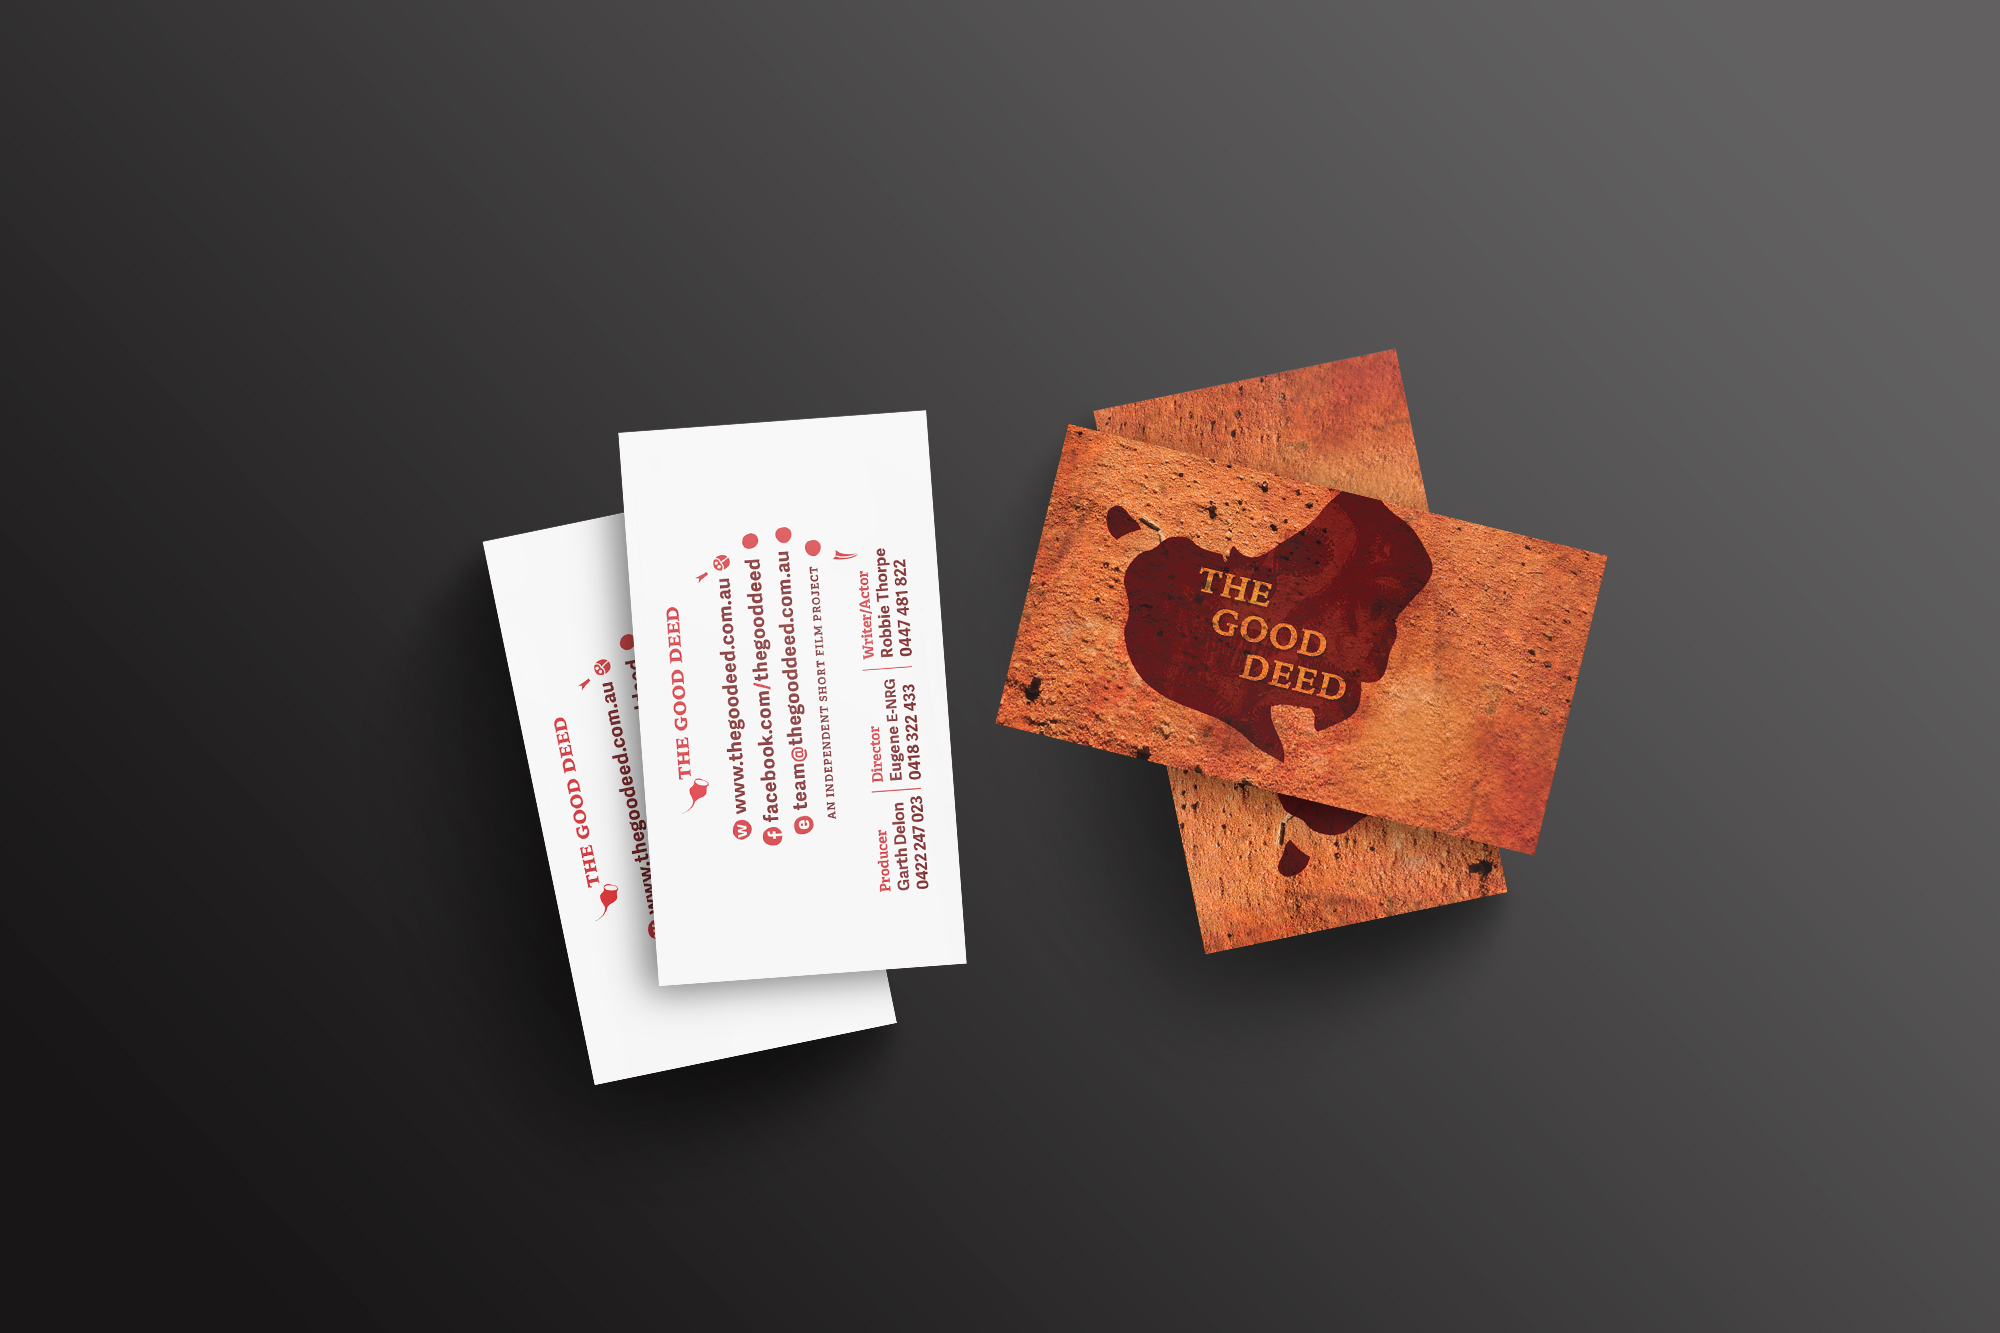 Film business cards choice image free business cards the good deed short film bodhi creative business cards magicingreecefo choice image magicingreecefo Choice Image